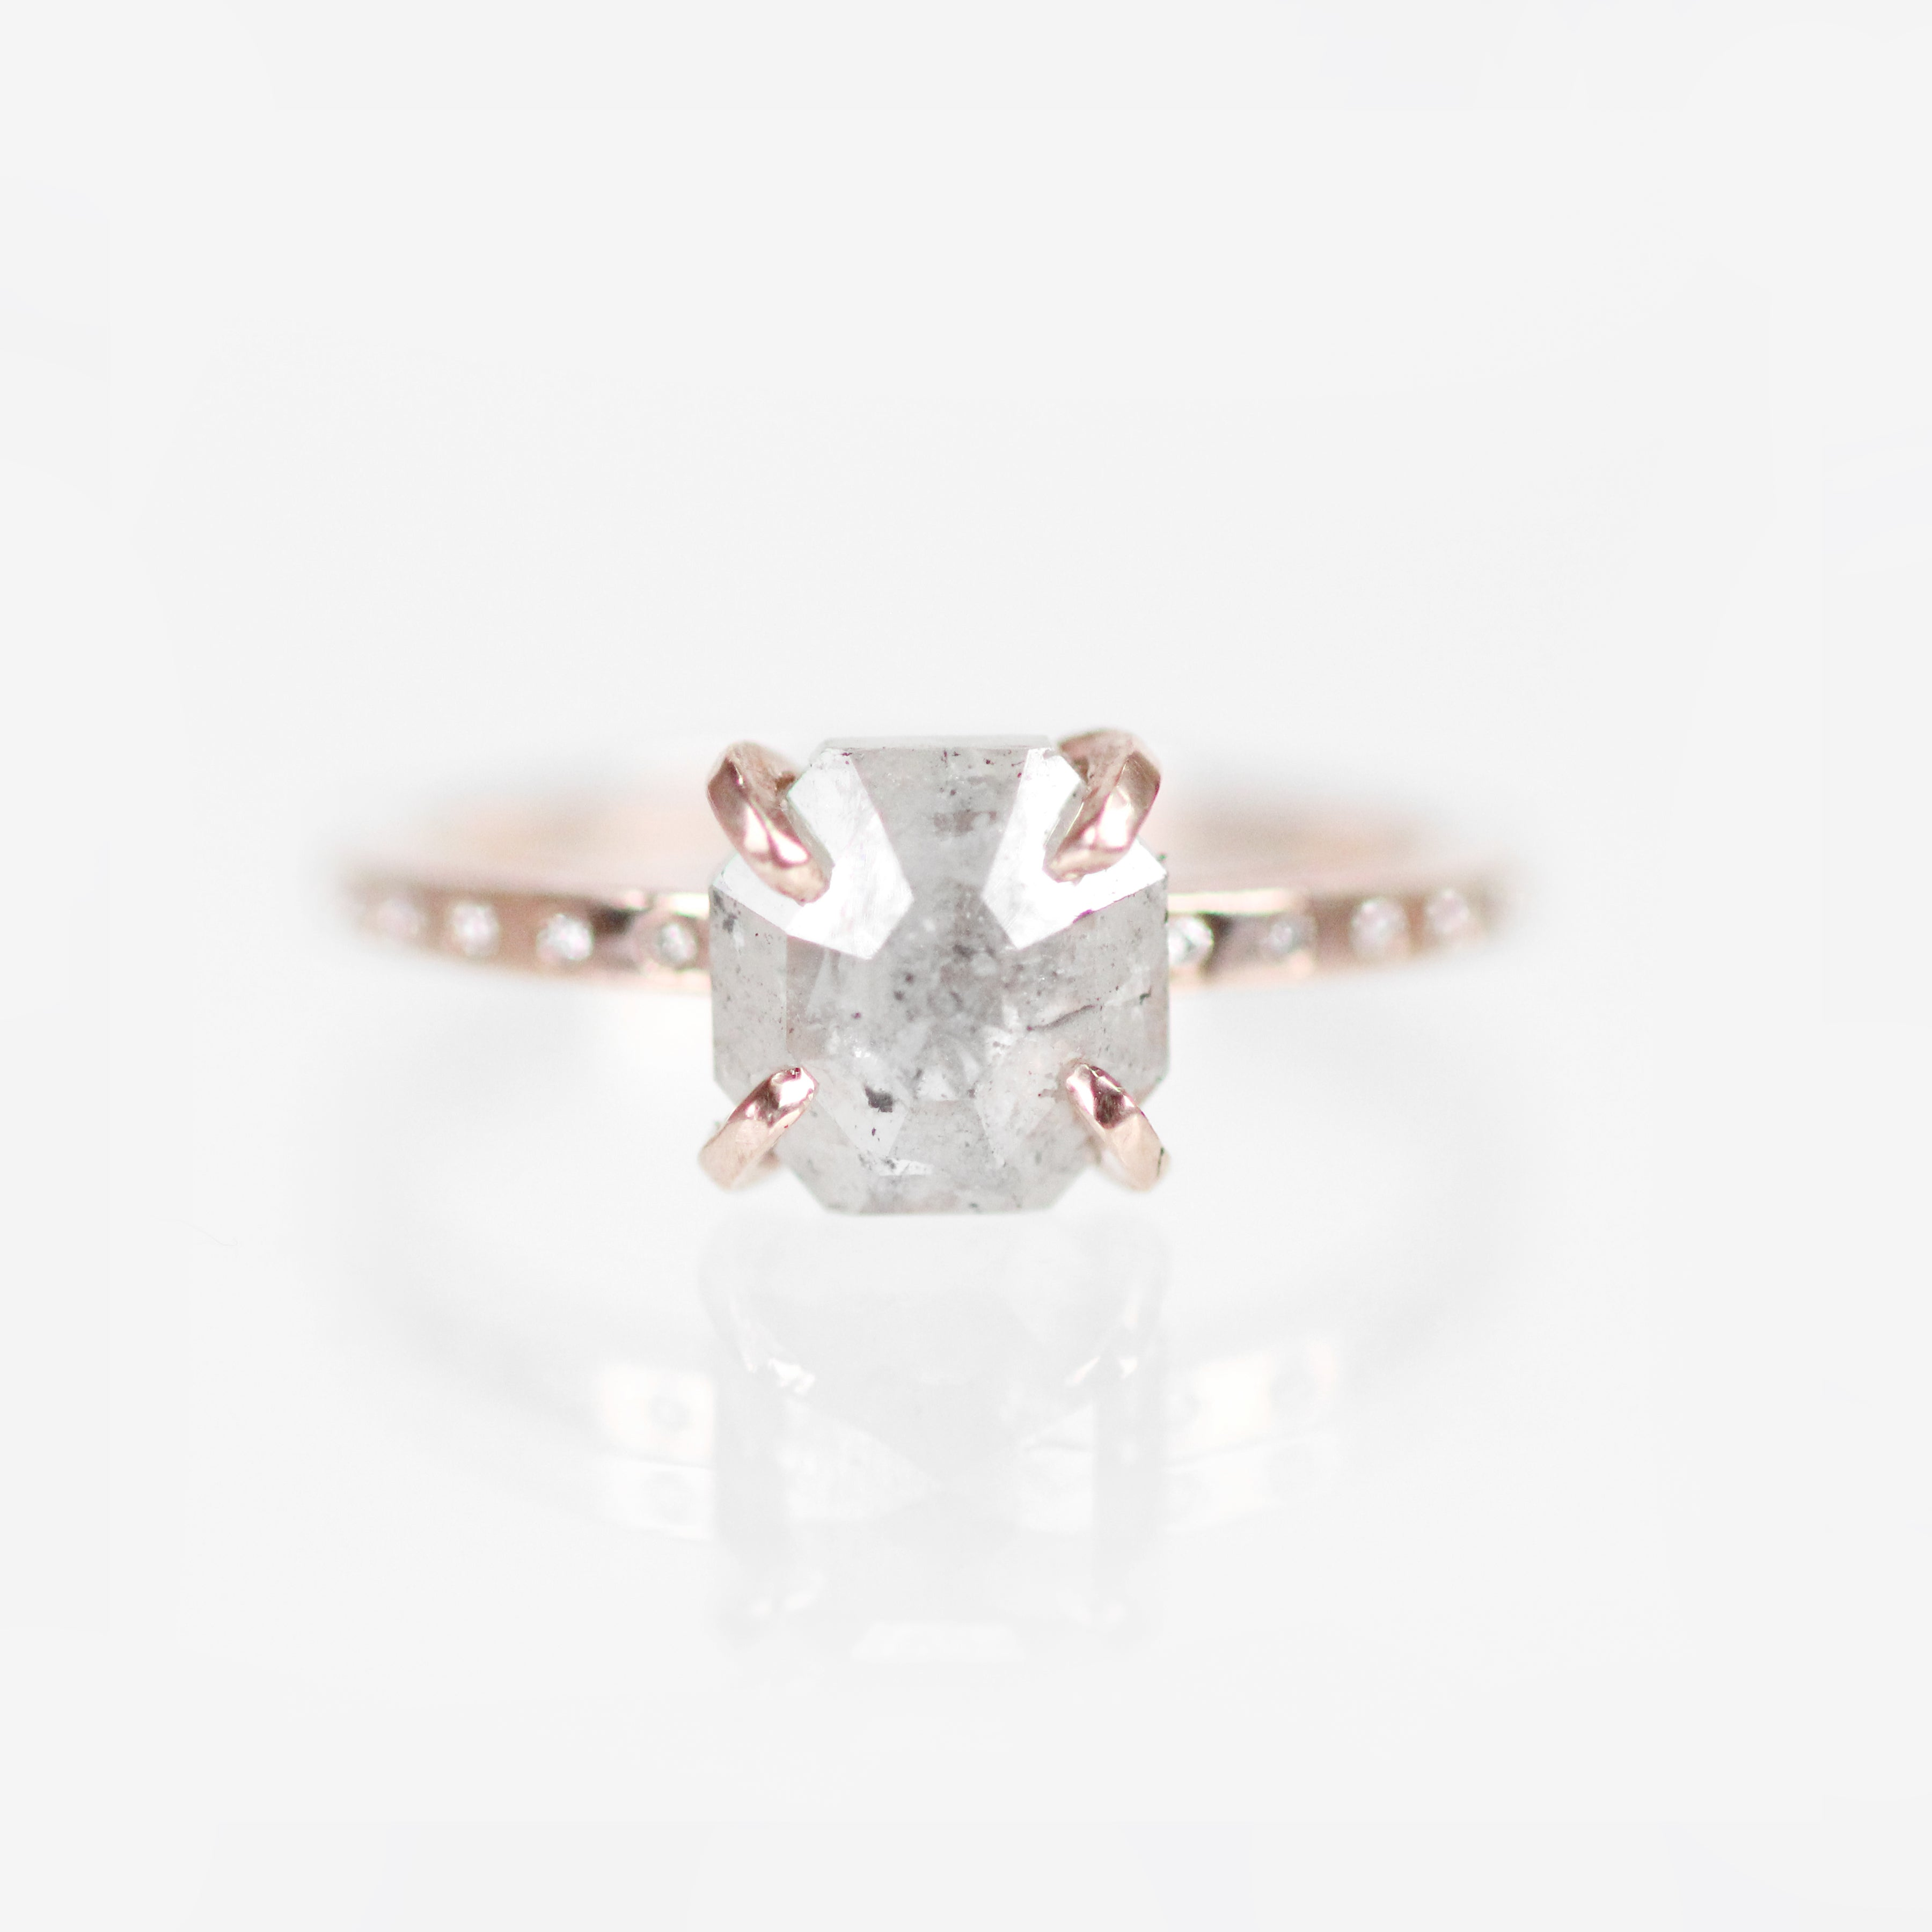 Ivan Ring with Misty White Diamond in 10k Rose Gold - Ready to Size and Ship